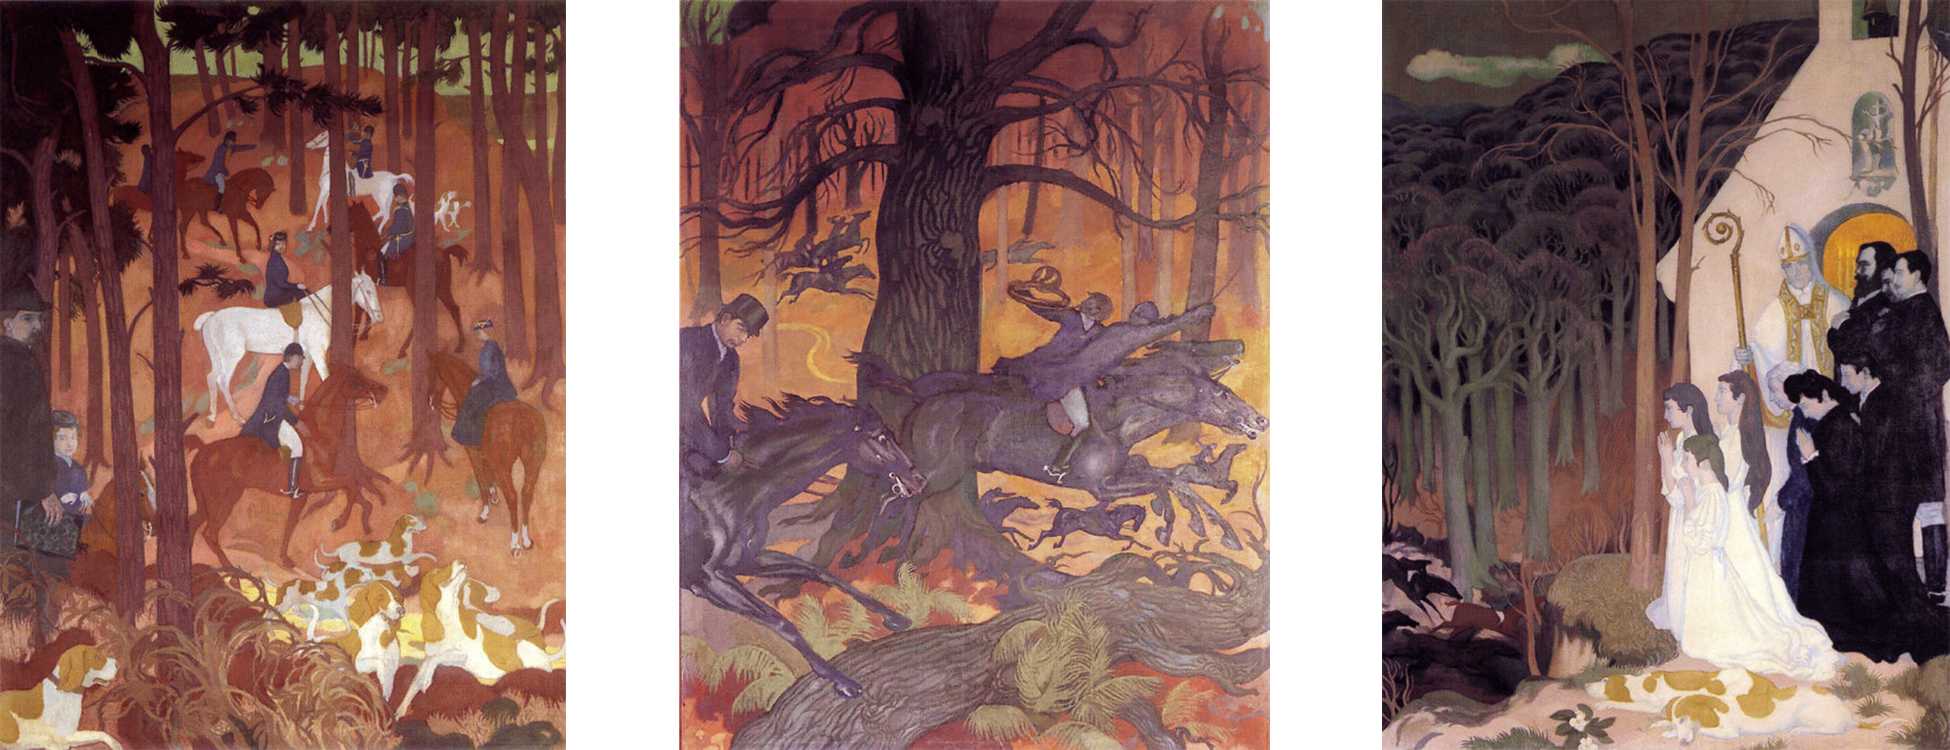 """""""The Legend of Saint Hubert,"""" 1897, each panel is 88.58"""" tall x 68.89"""" wide, oil on canvas, collection of Departmental Museum of Maurice Denis, Saint-Germain-en-Laye, France  From left to right: 1. Departure, 2. The Release of the Dogs, 3. The Good Go, 4."""